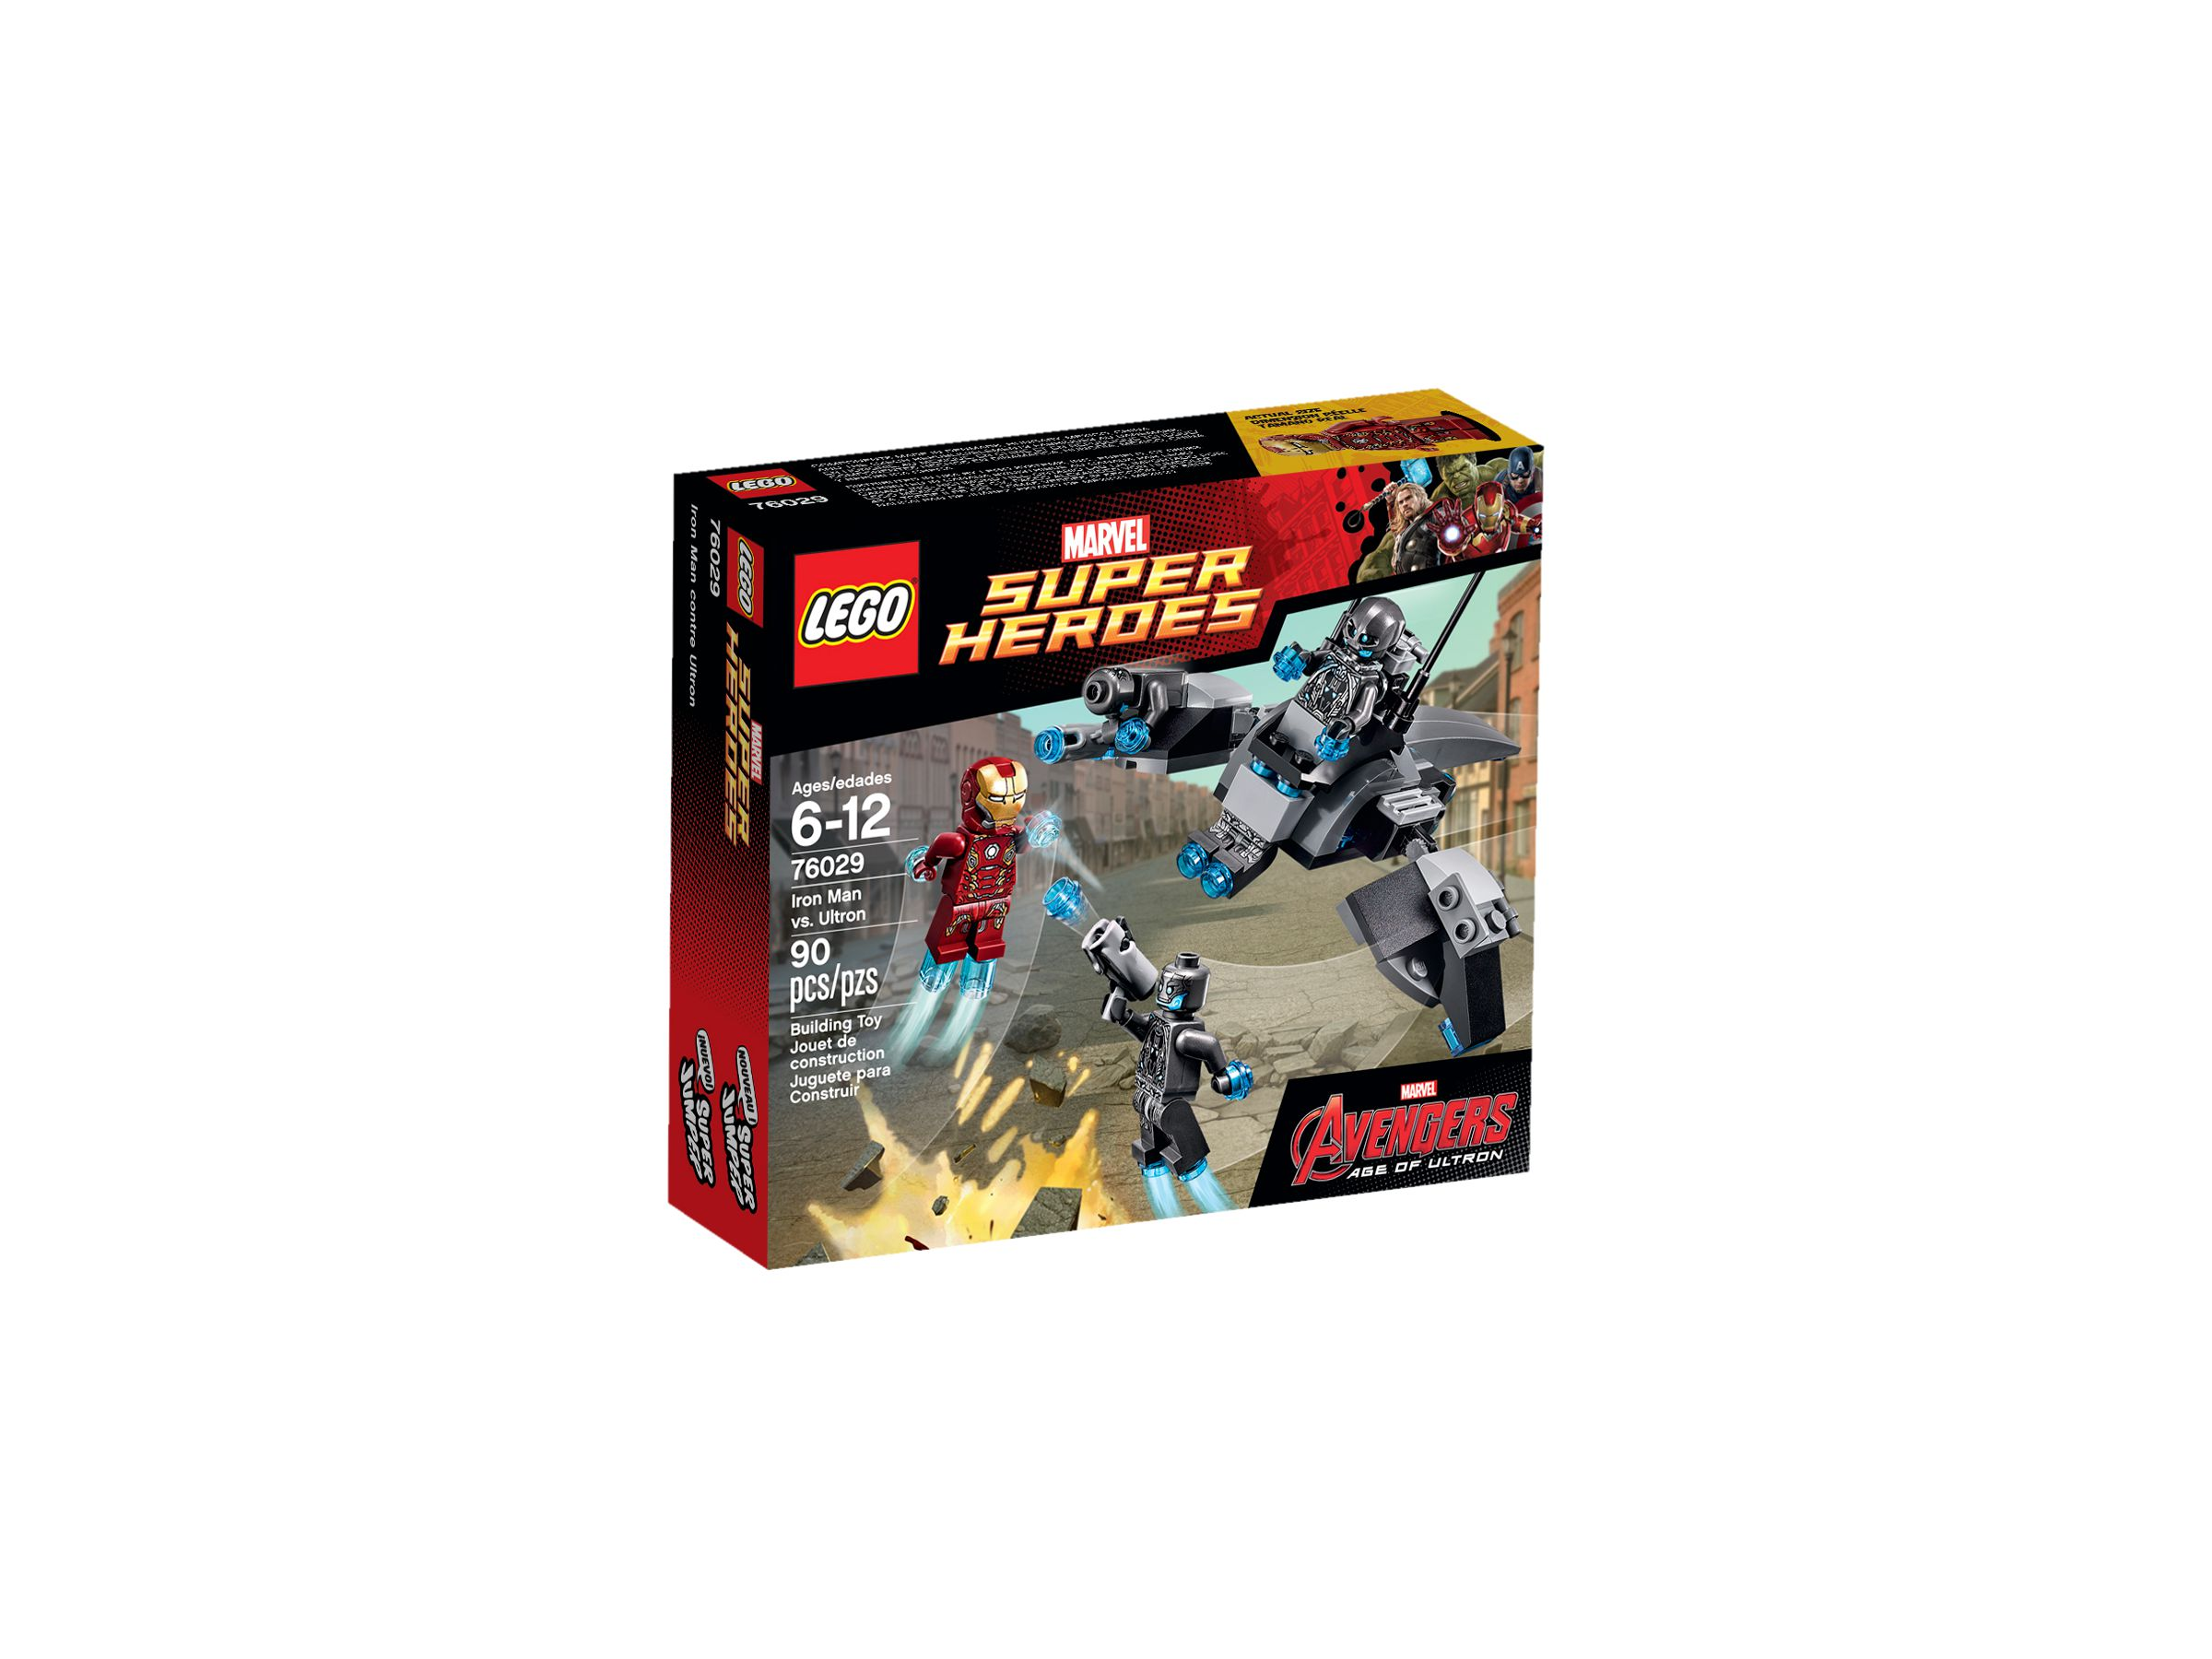 LEGO Super Heroes 76029 Iron Man vs. Ultron LEGO_76029_alt1.jpg